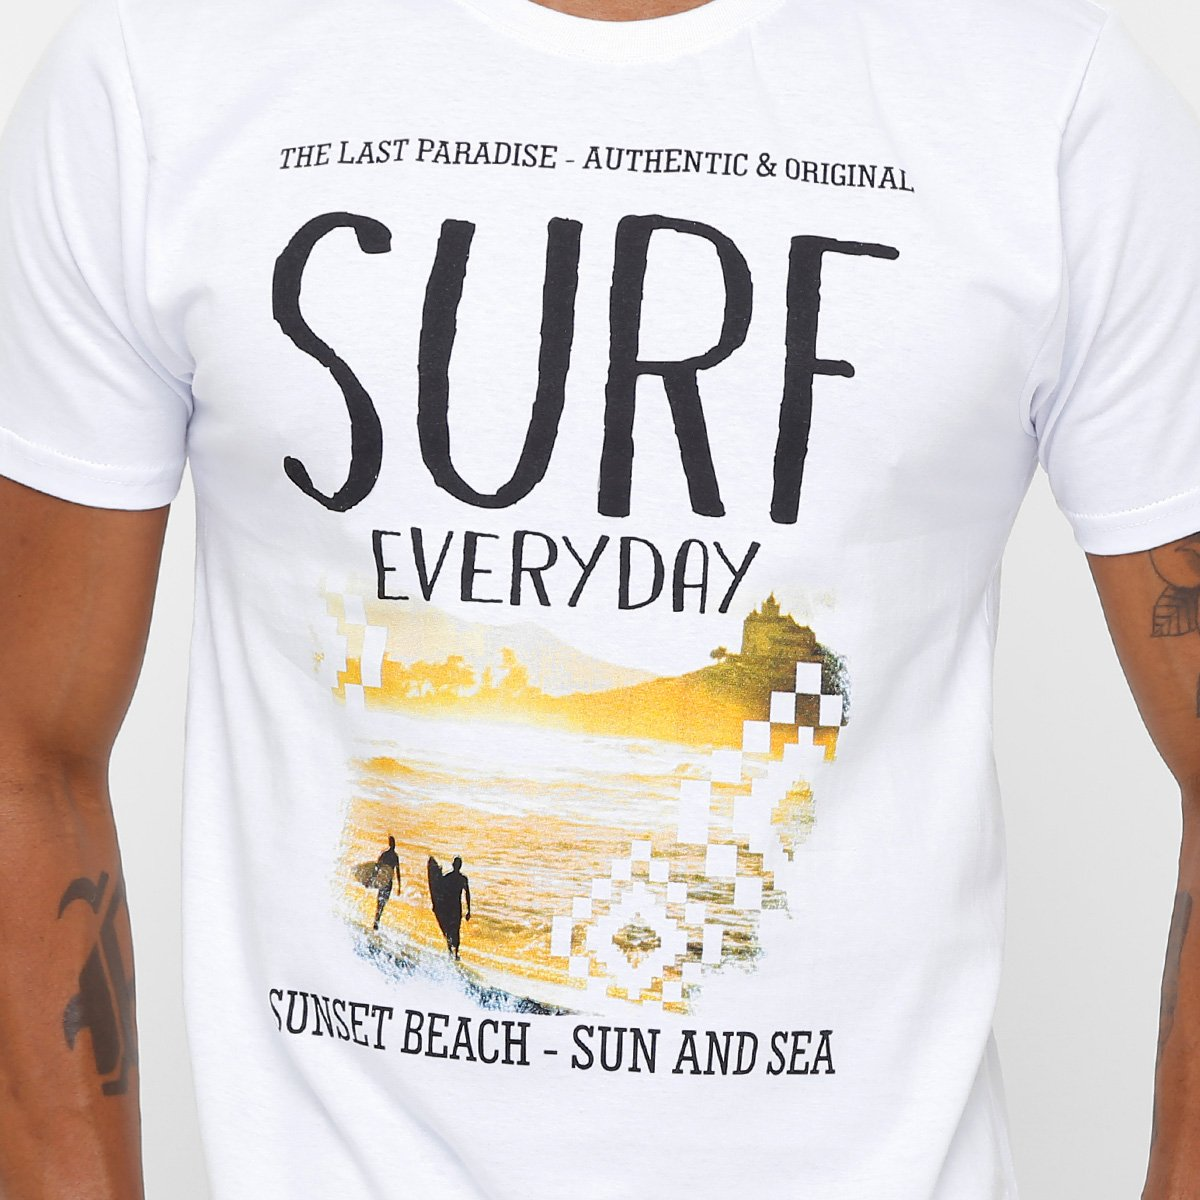 Every Brasil Brasil Branco Eagle Surf Masculina Day Camiseta Eagle Camiseta Every Surf Day qFaZSSf